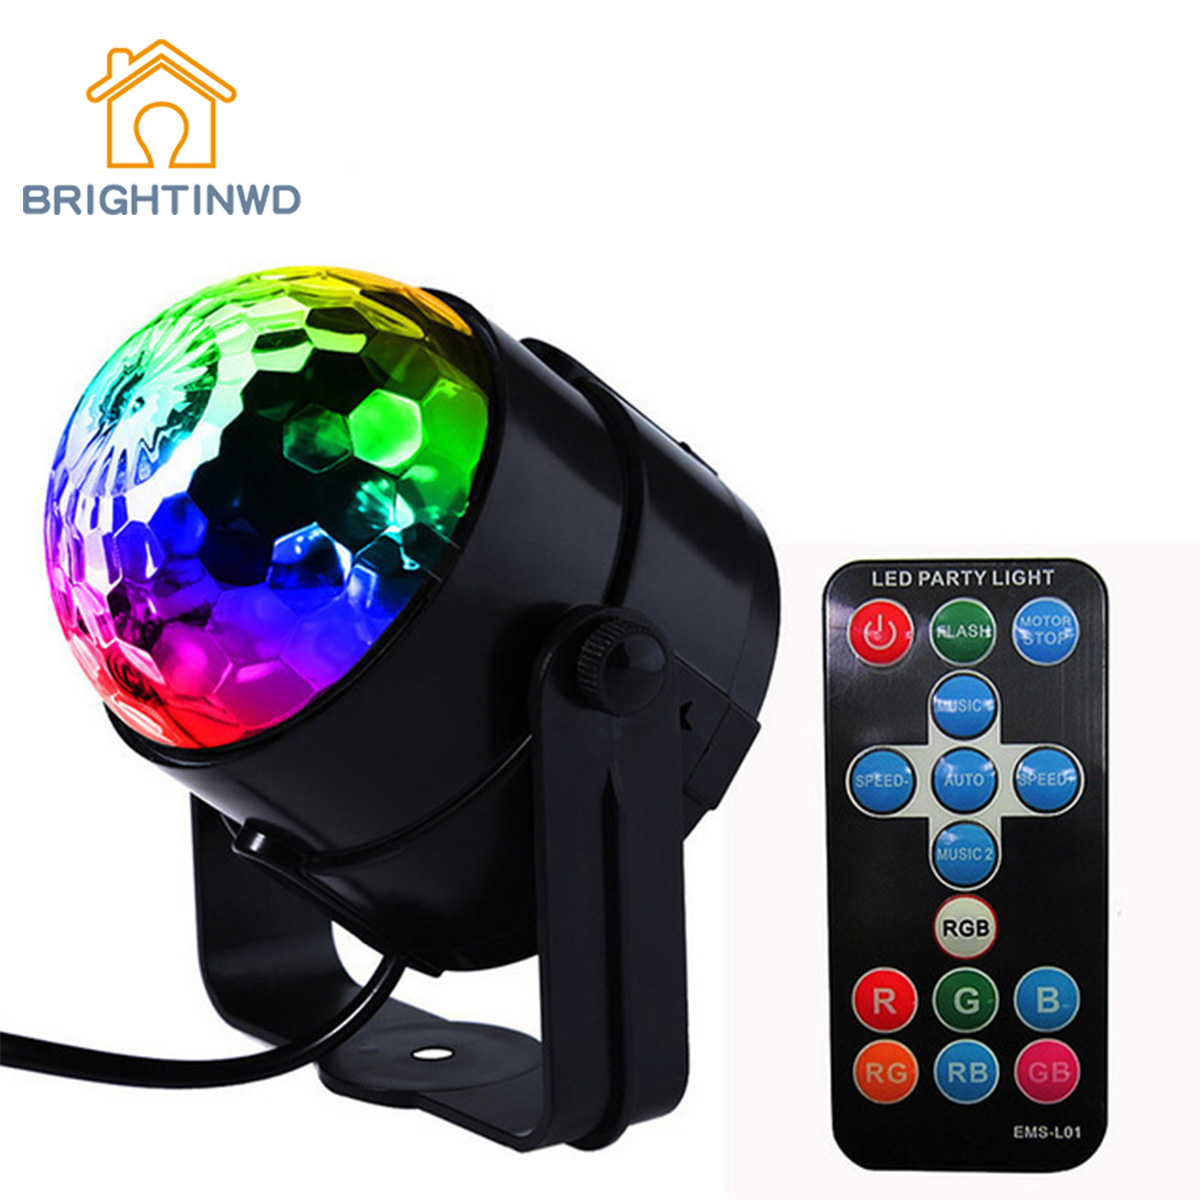 BRIGHTINWD LED Disco Ball Dj Stage Light 3W 220V Sound Activated Strobe Stage Lighting Party Lights Projector Stage Light Mini